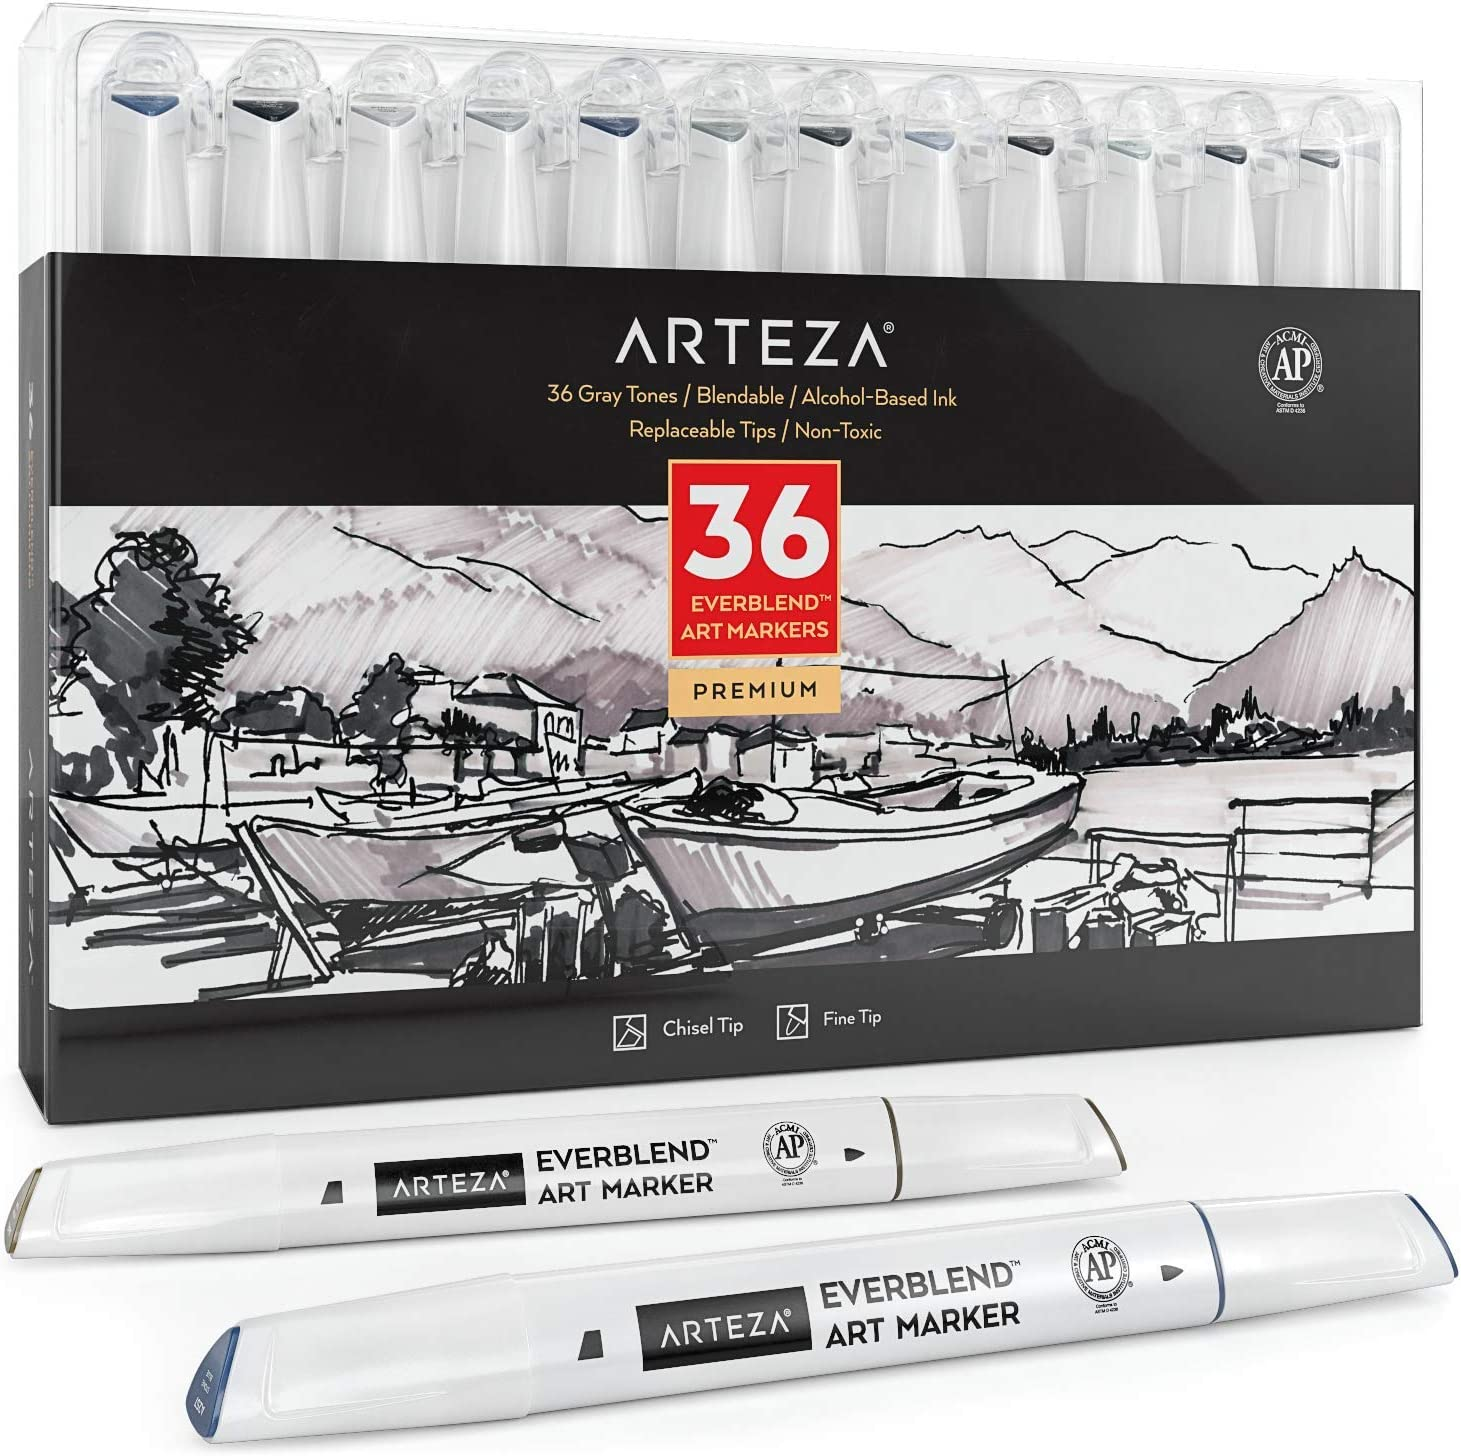 ARTEZA Gray Tone Alcohol Based Everblend Art Markers, Set of 36 Colors, Sketch Markers with Dual Tips (Fine and Broad Chisel) for Painting, Coloring, Sketching and Drawing